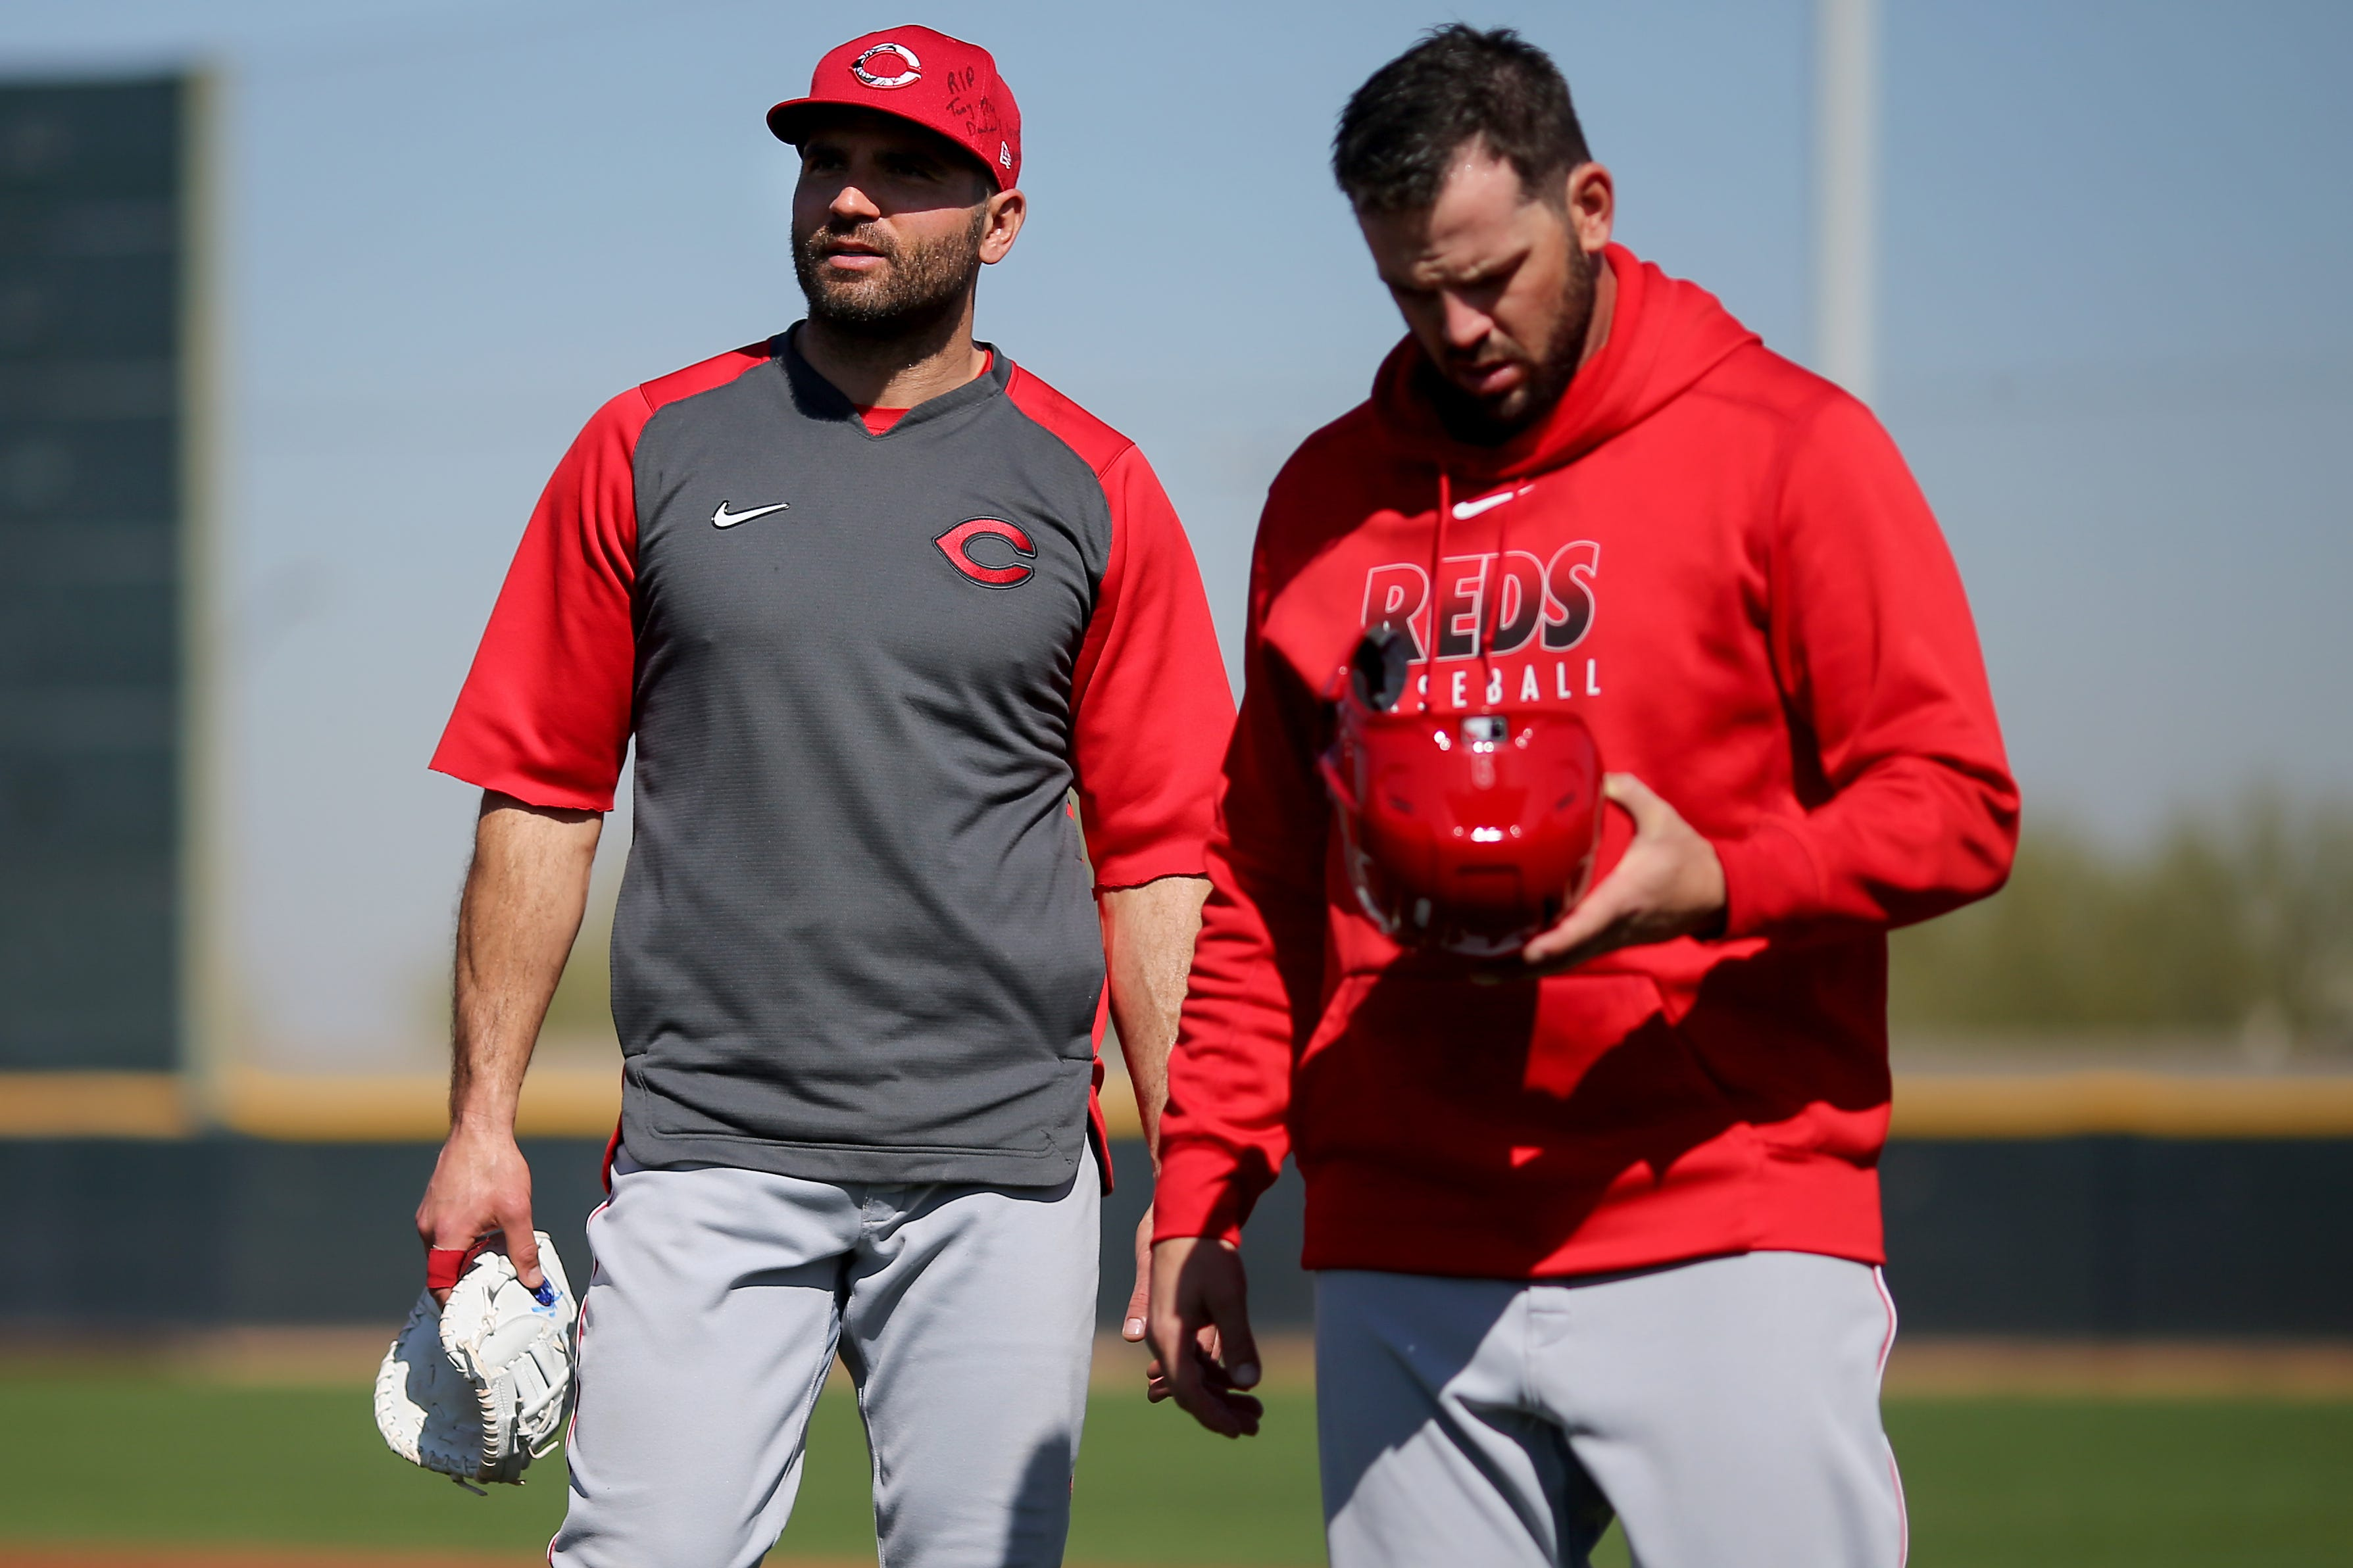 Cincinnati Reds spring training: Joey Votto learning from Moustakas